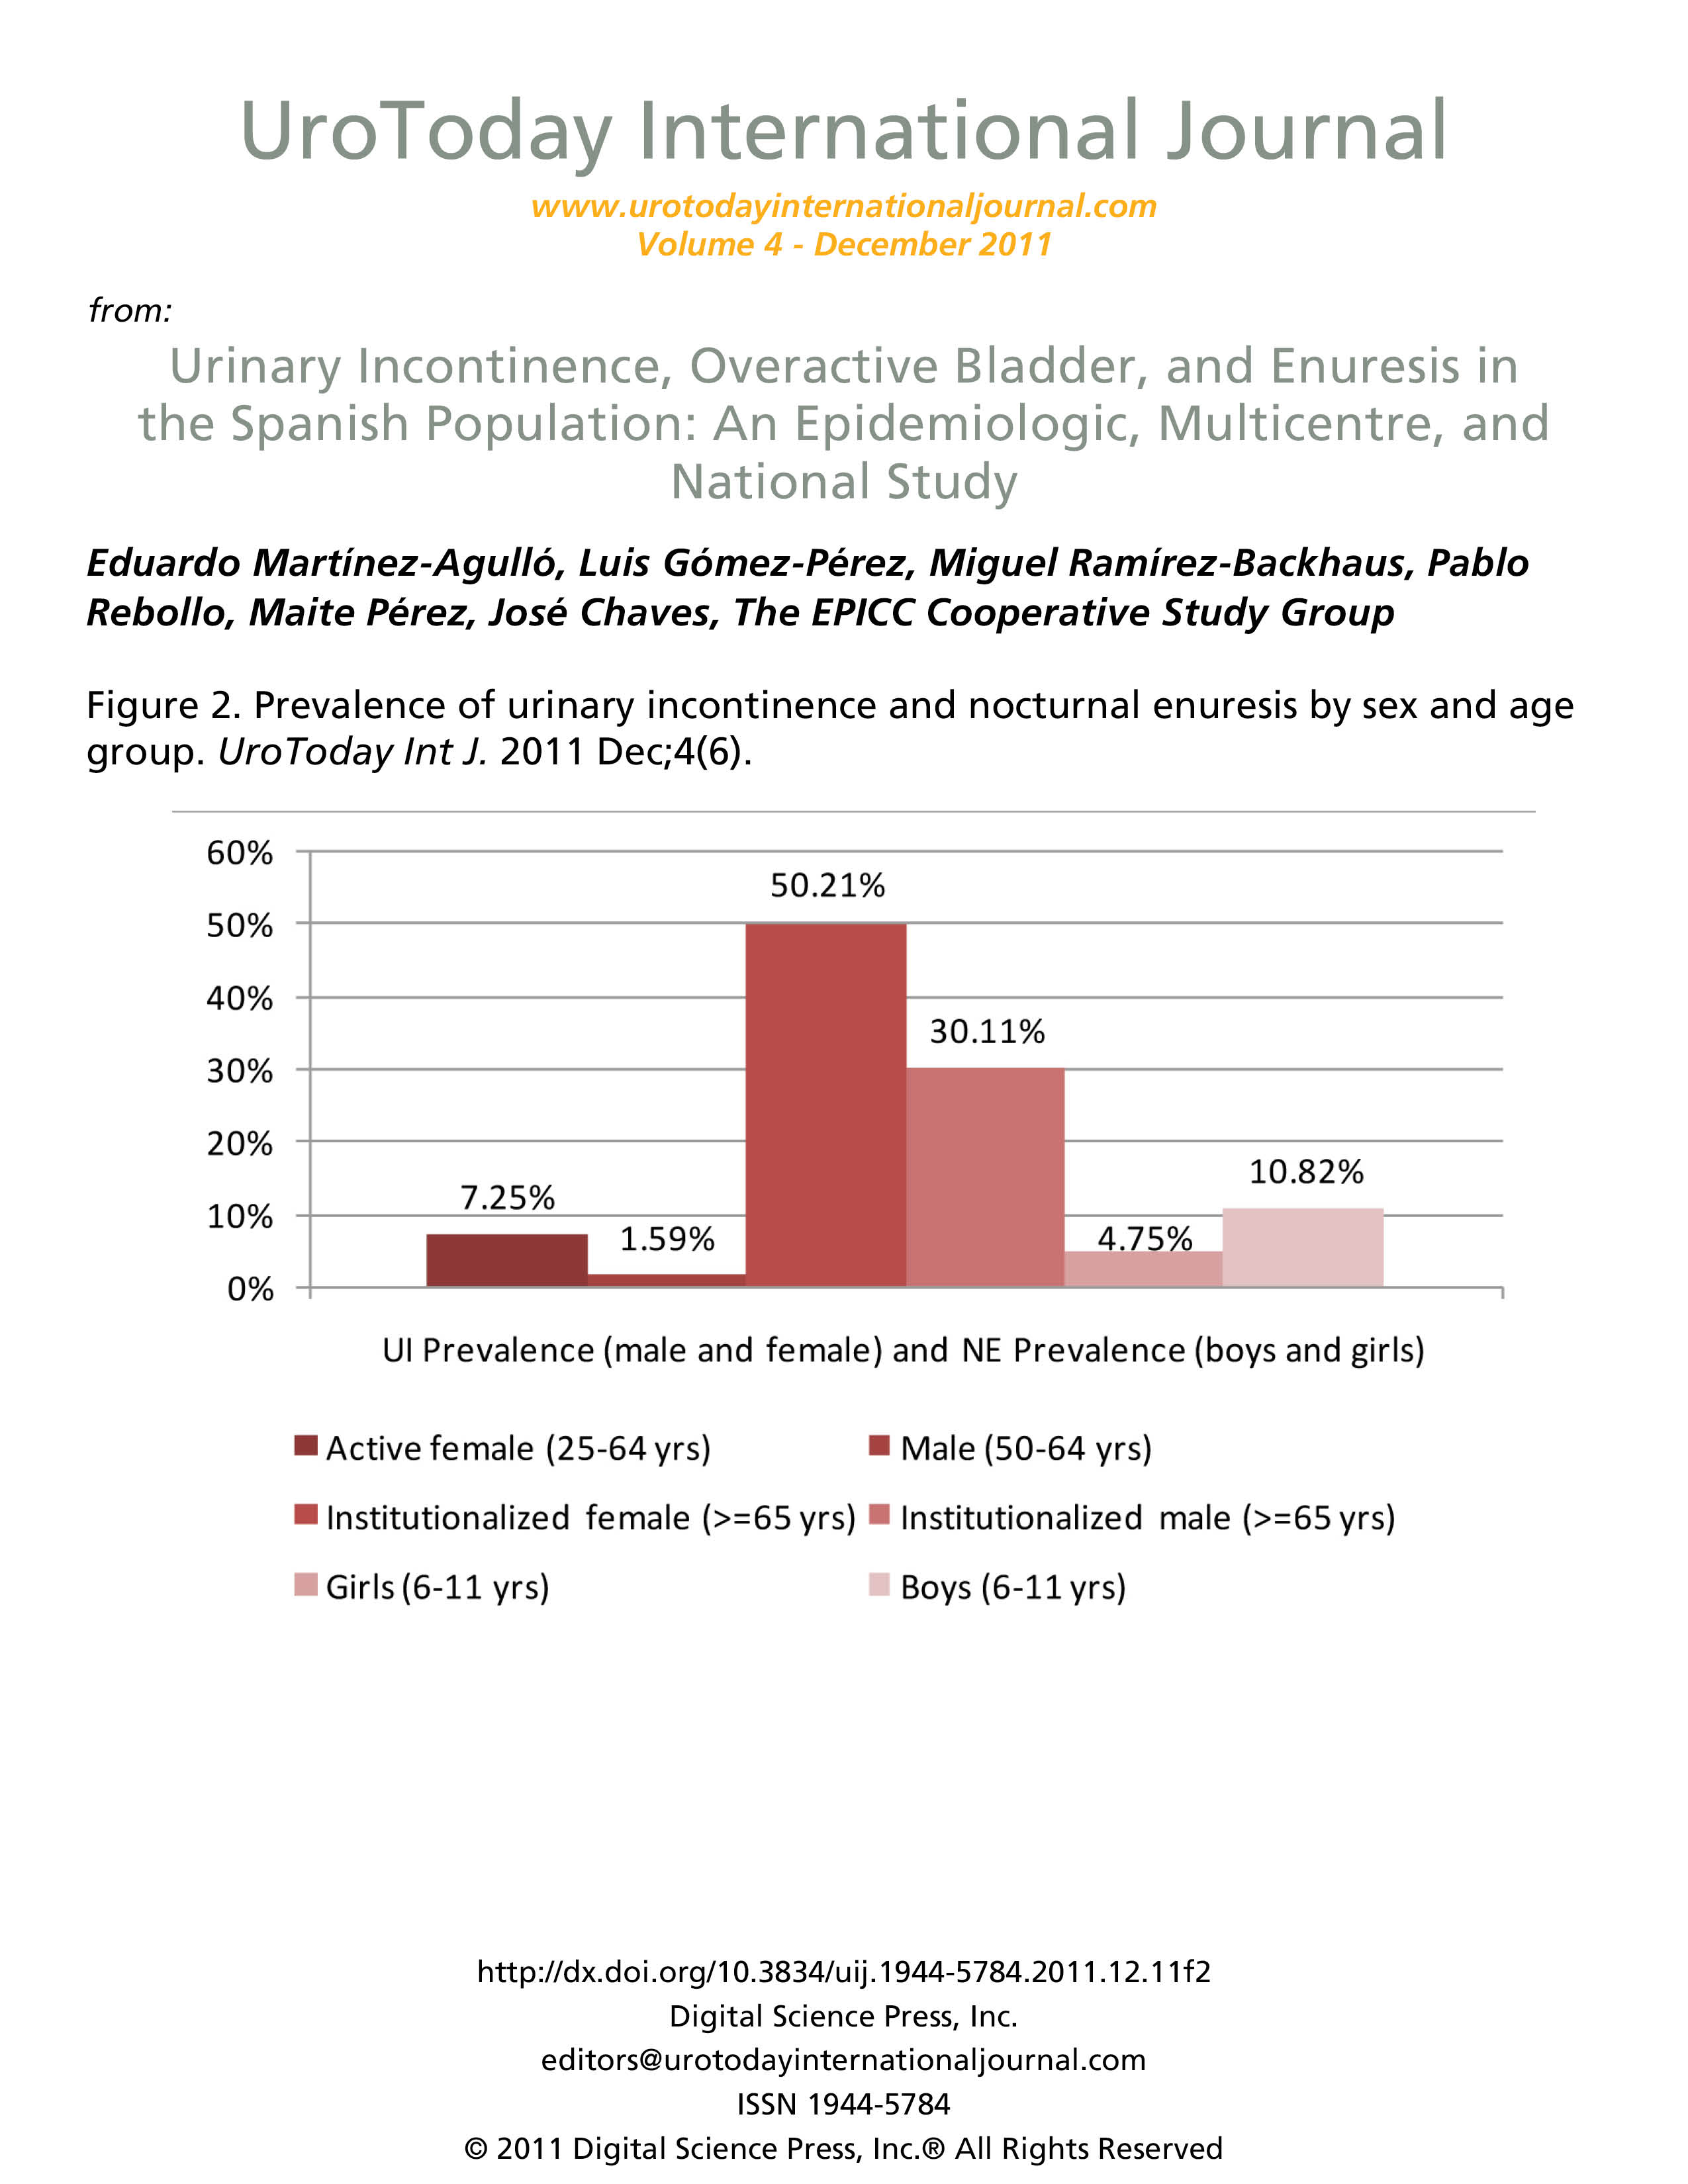 urinary incontinence, overactive bladder, and enuresis in the